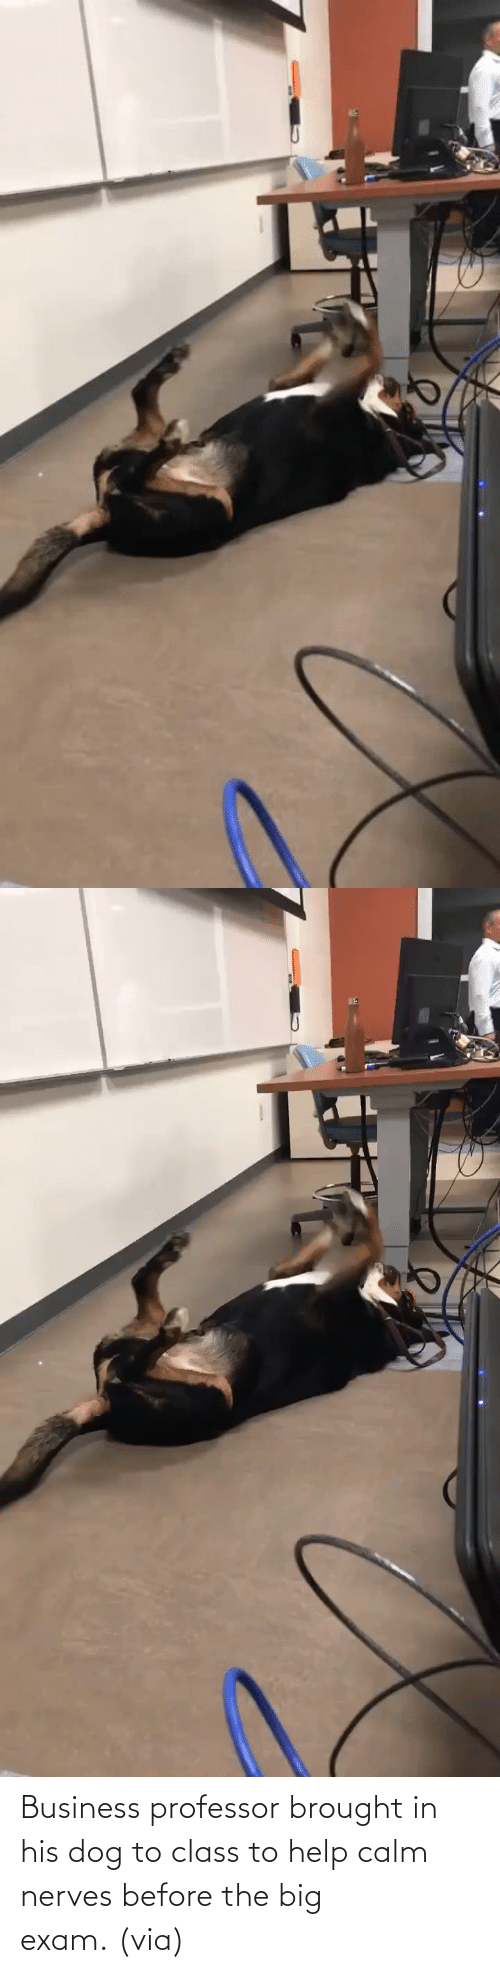 His: Business professor brought in his dog to class to help calm nerves before the big exam. (via)